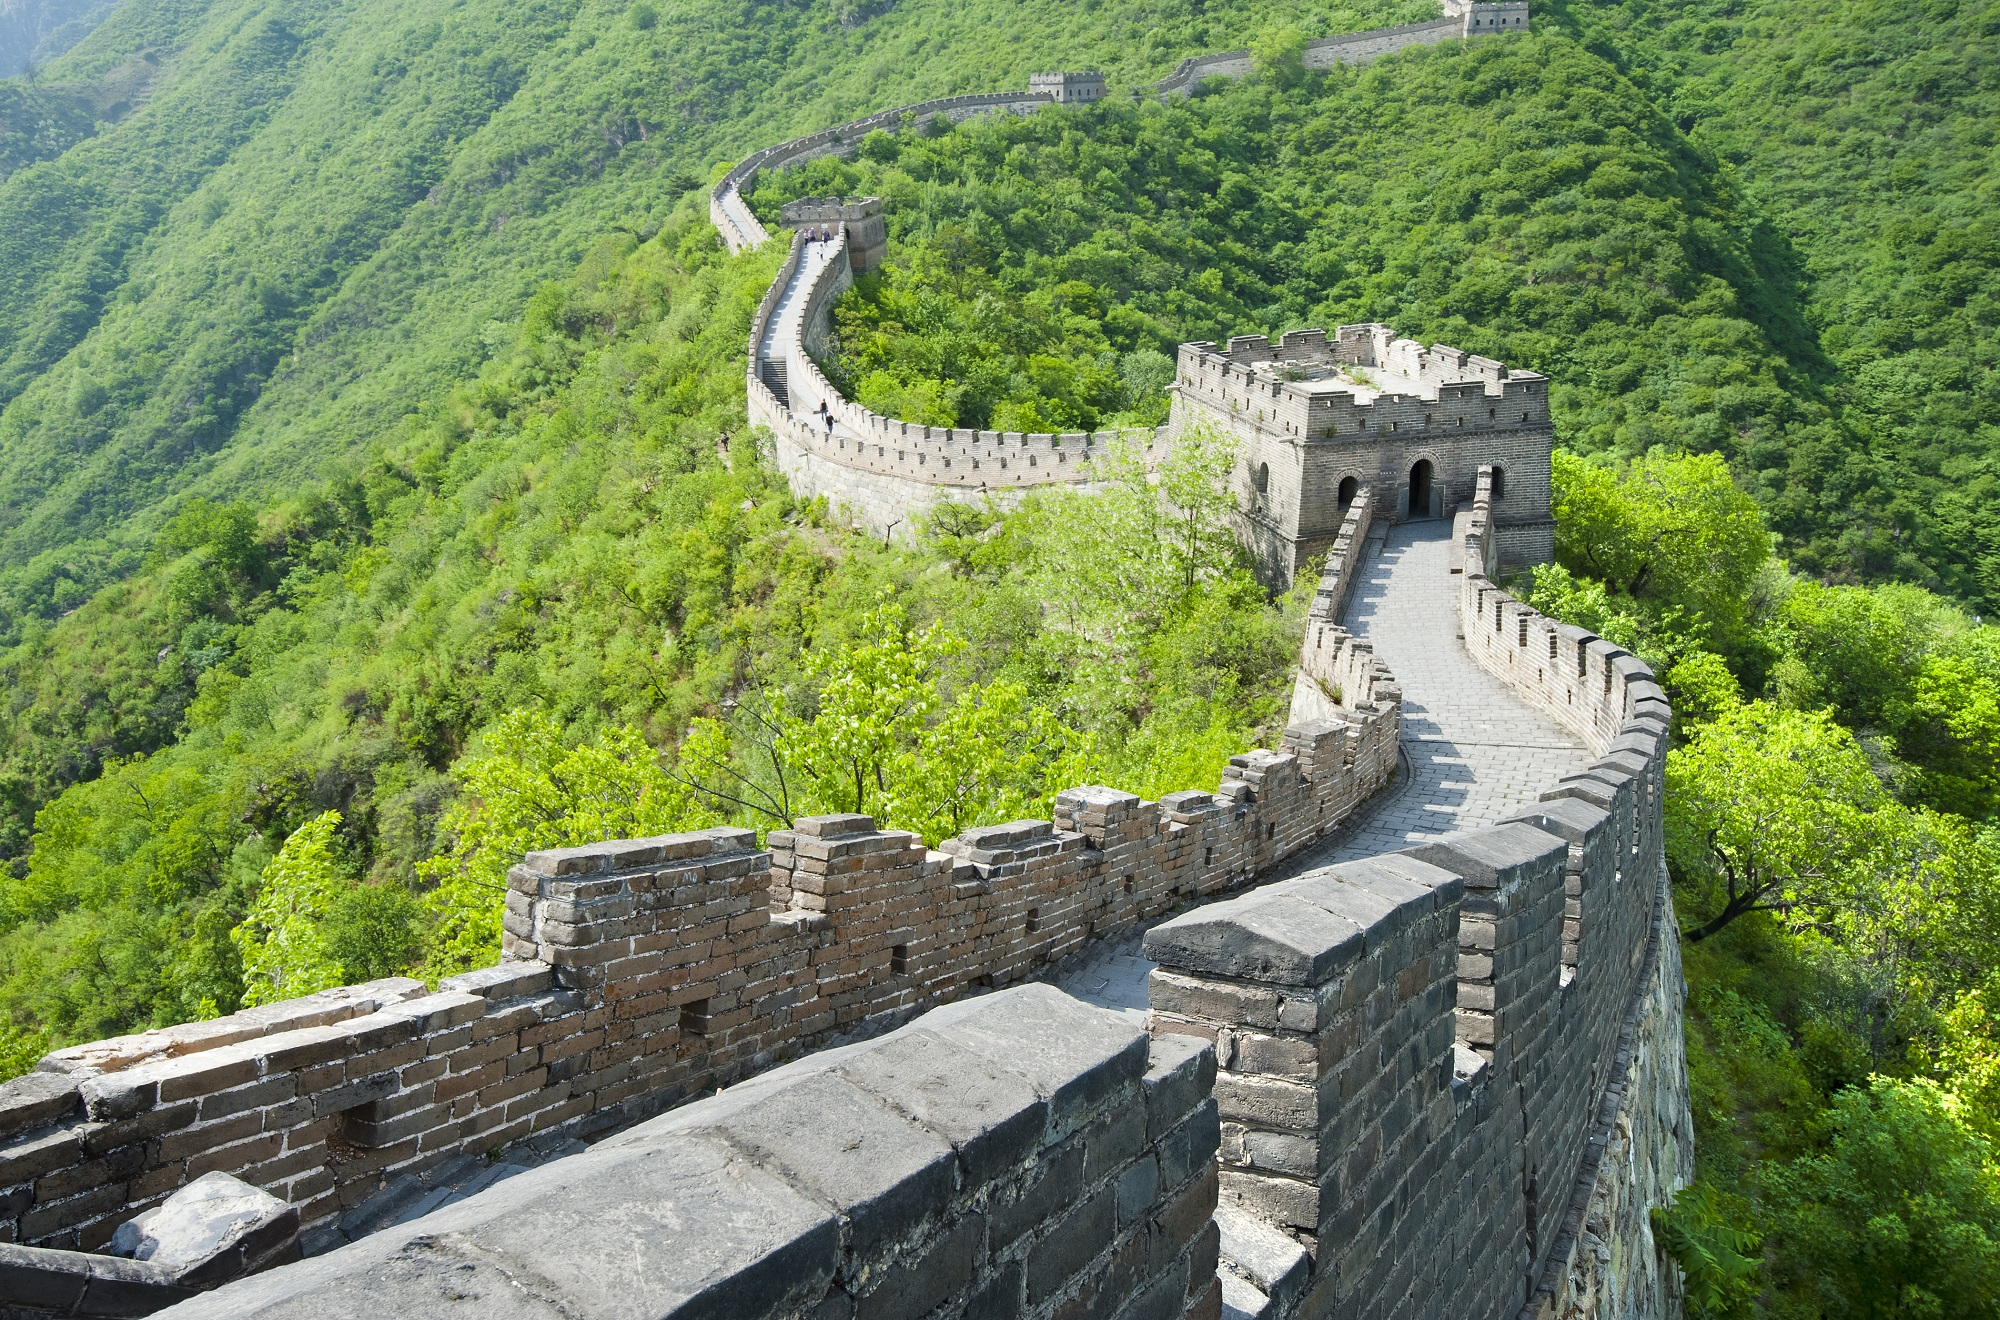 Chine-Great Wall of China in Summer-iStockphoto